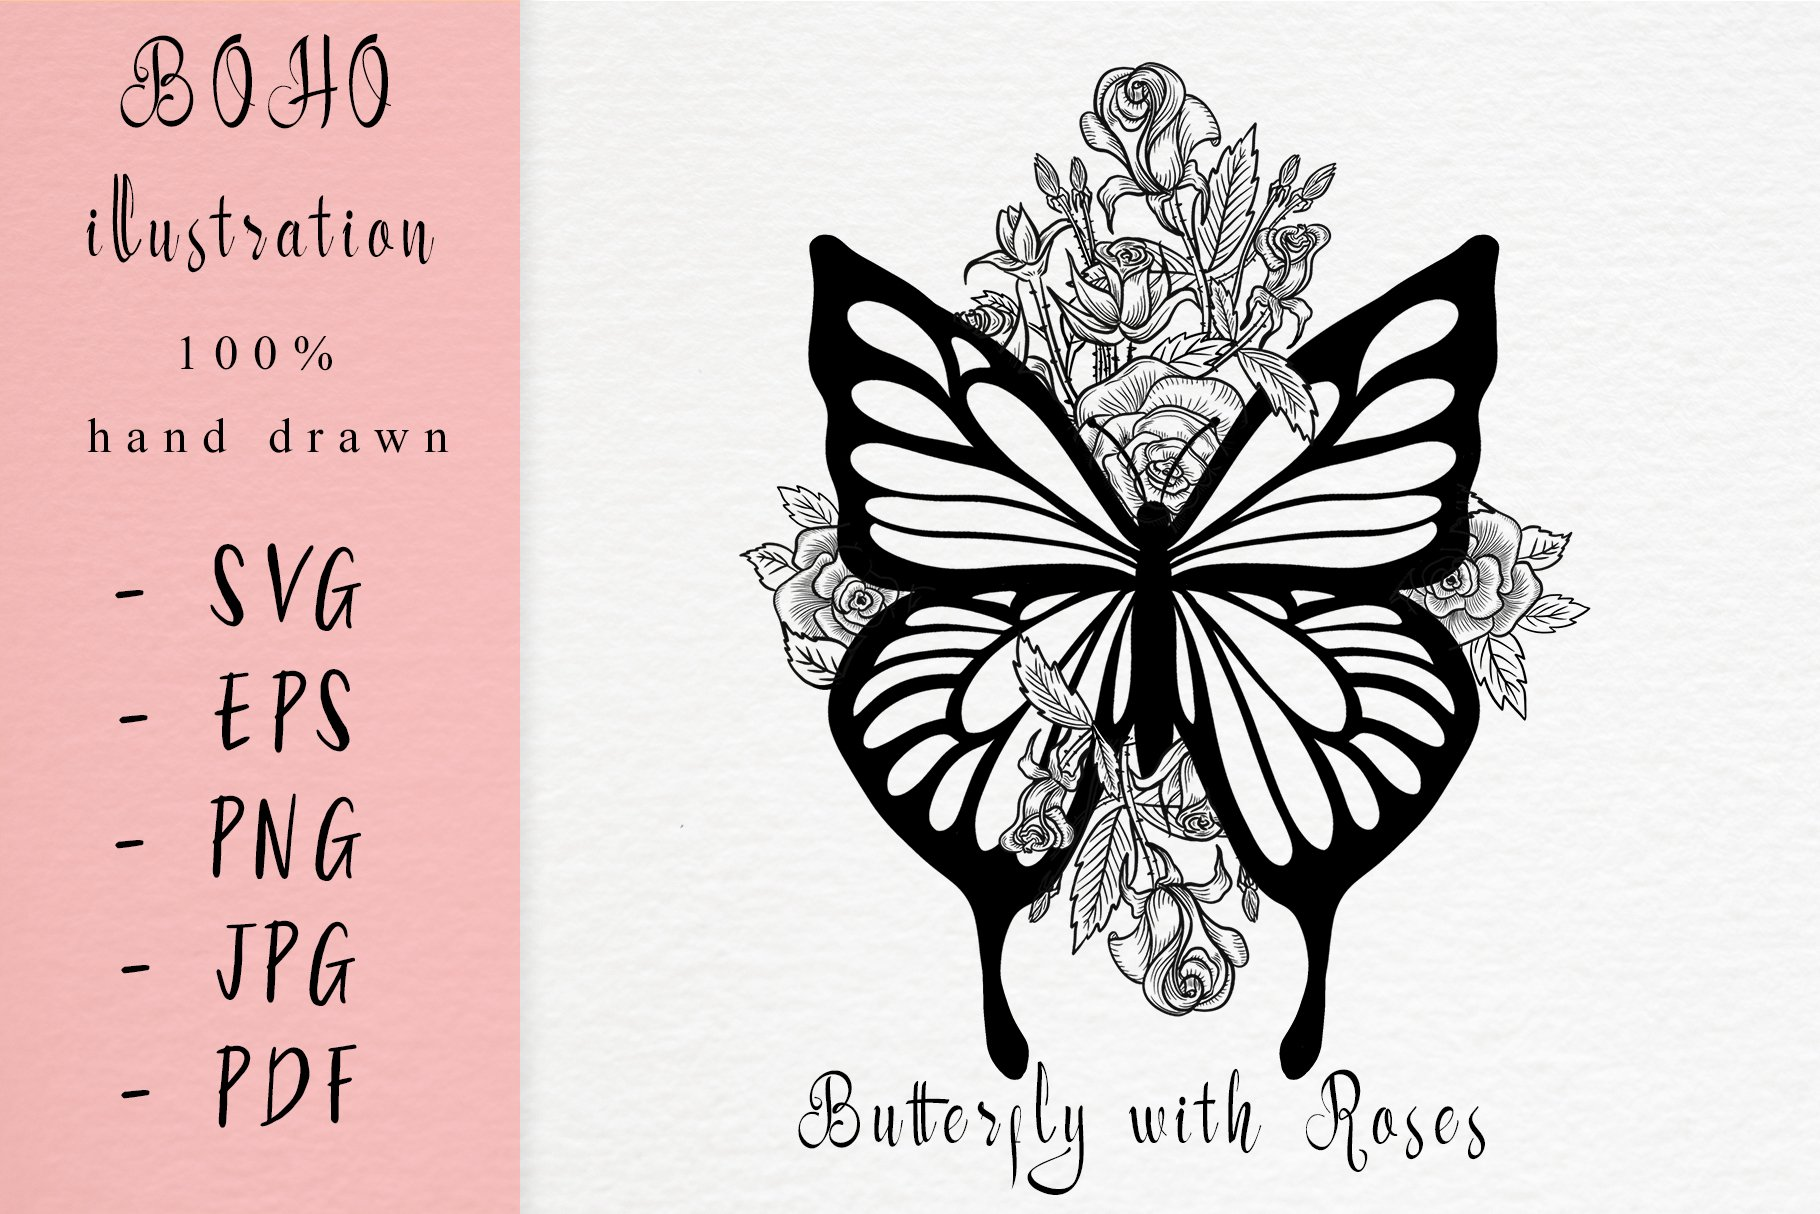 Boho illustration / Butterfly with roses example image 1